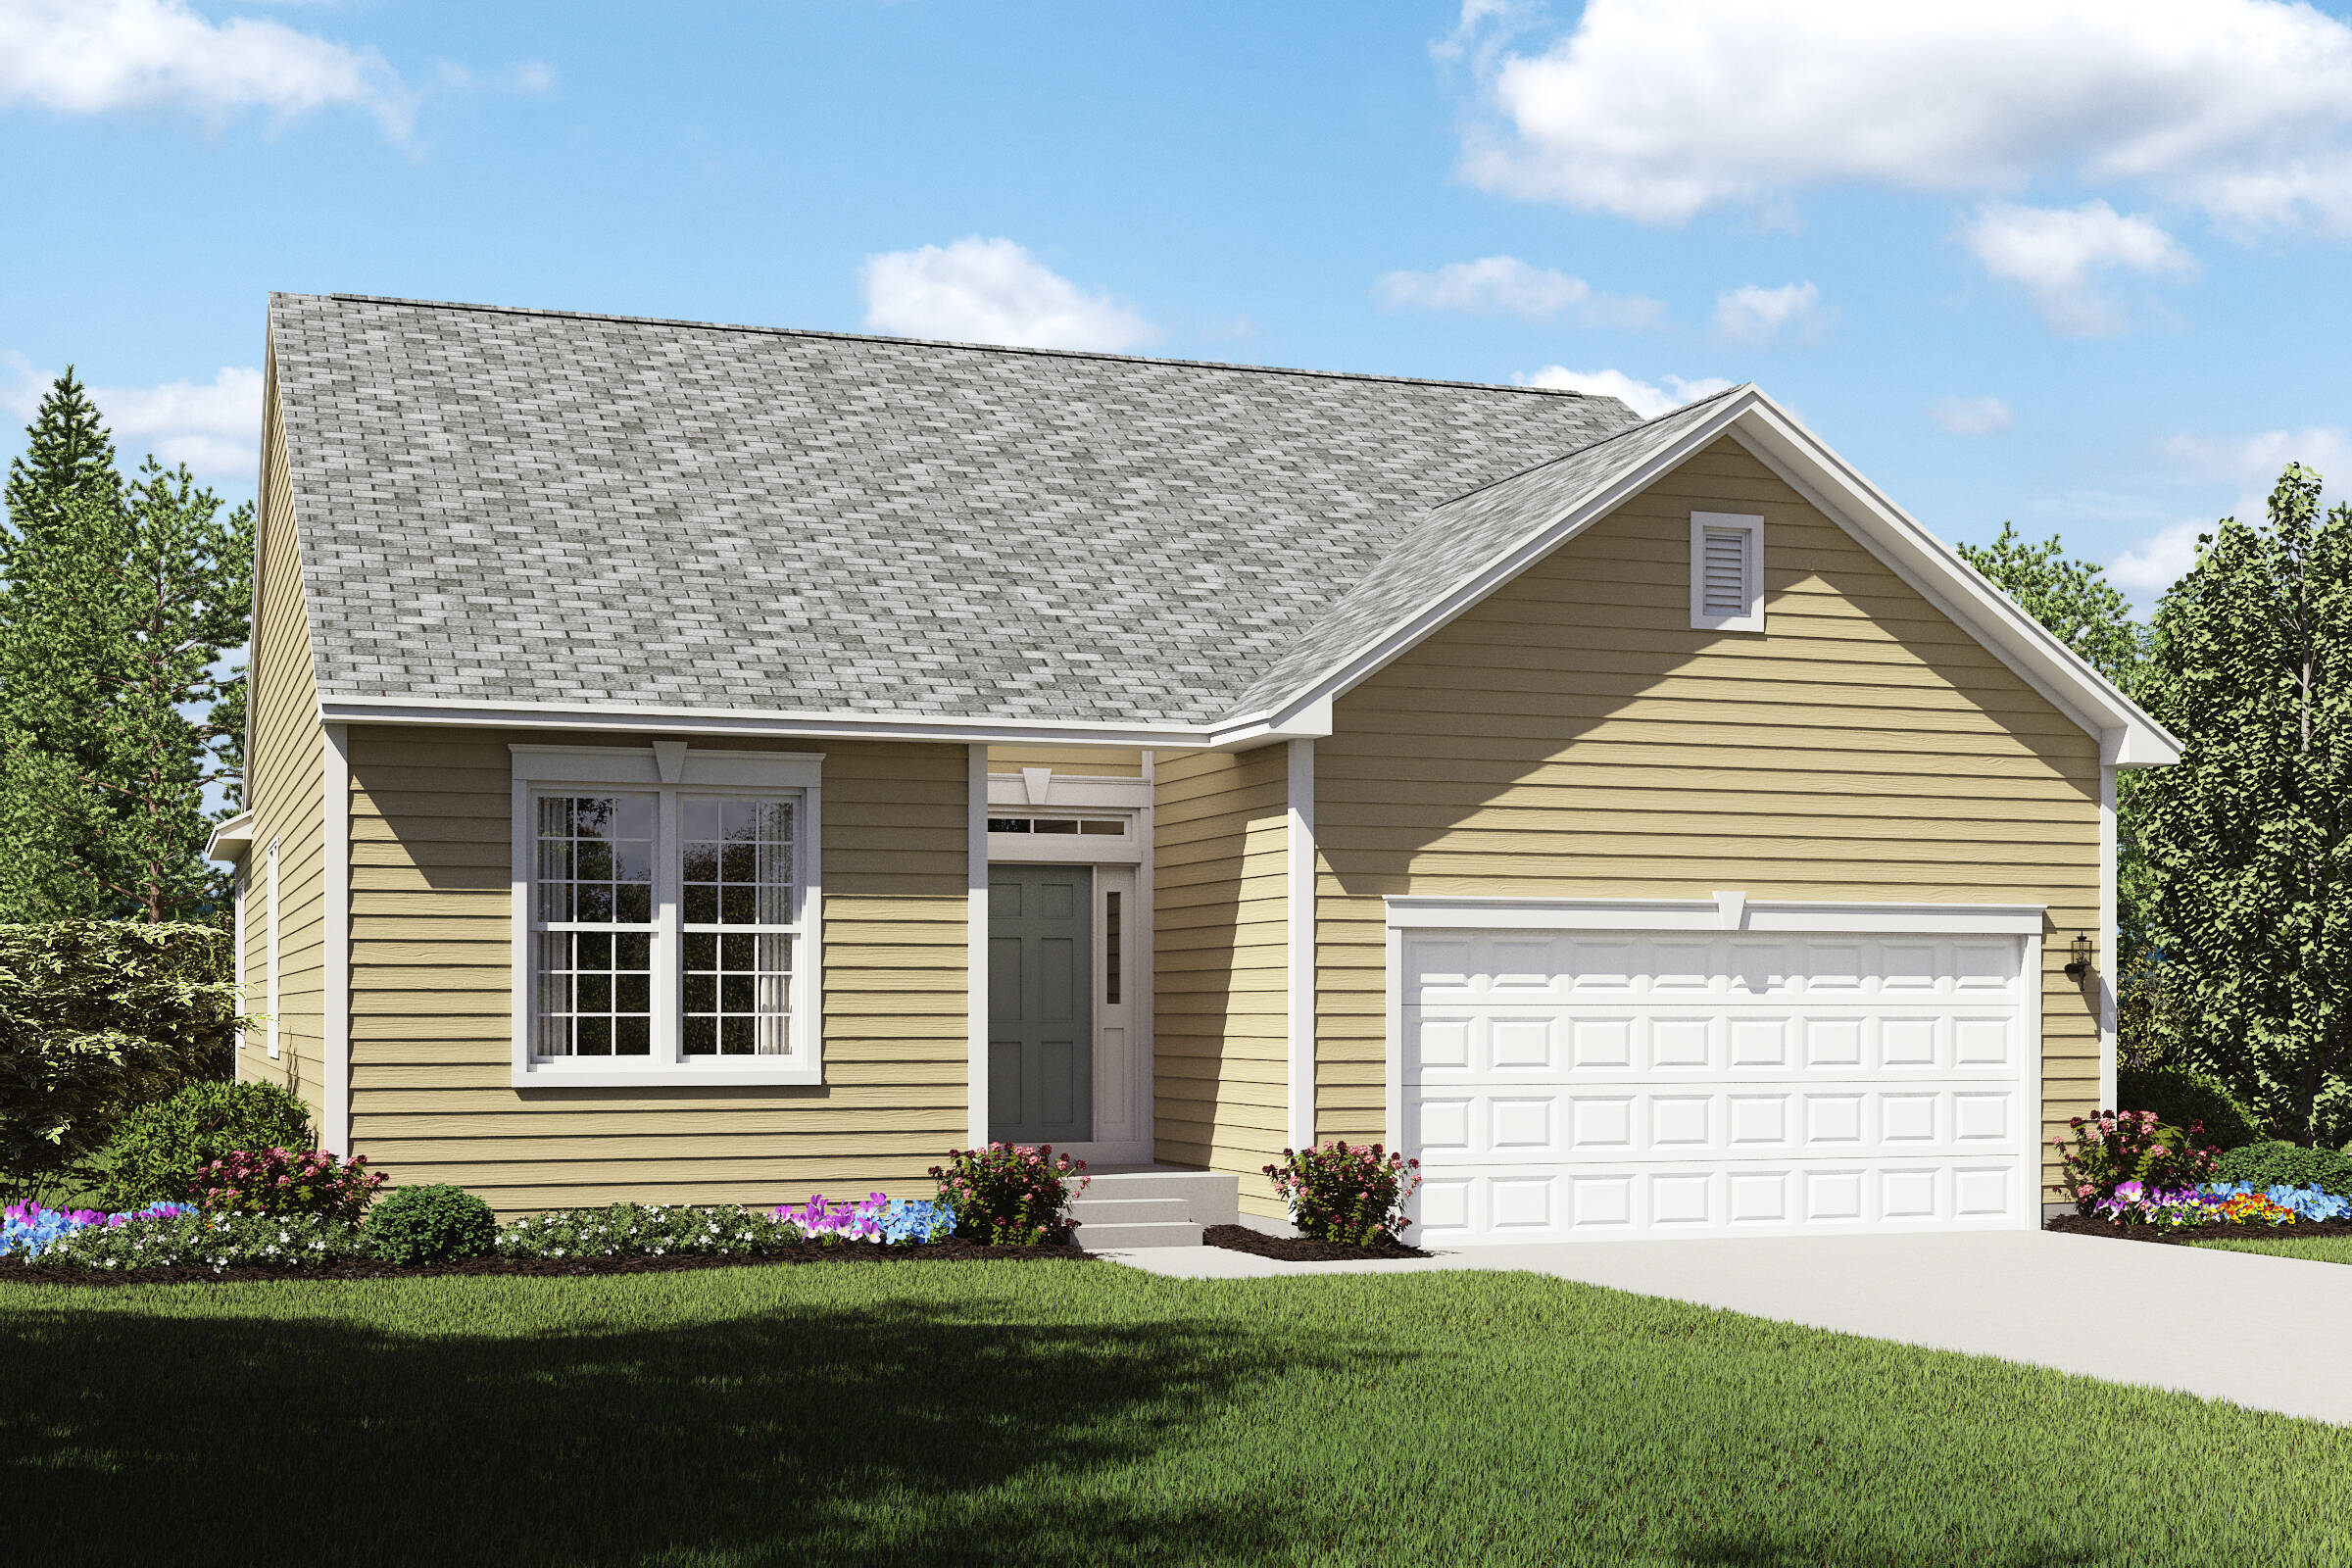 new home designs active lifestyle dorchester a lorain ohio